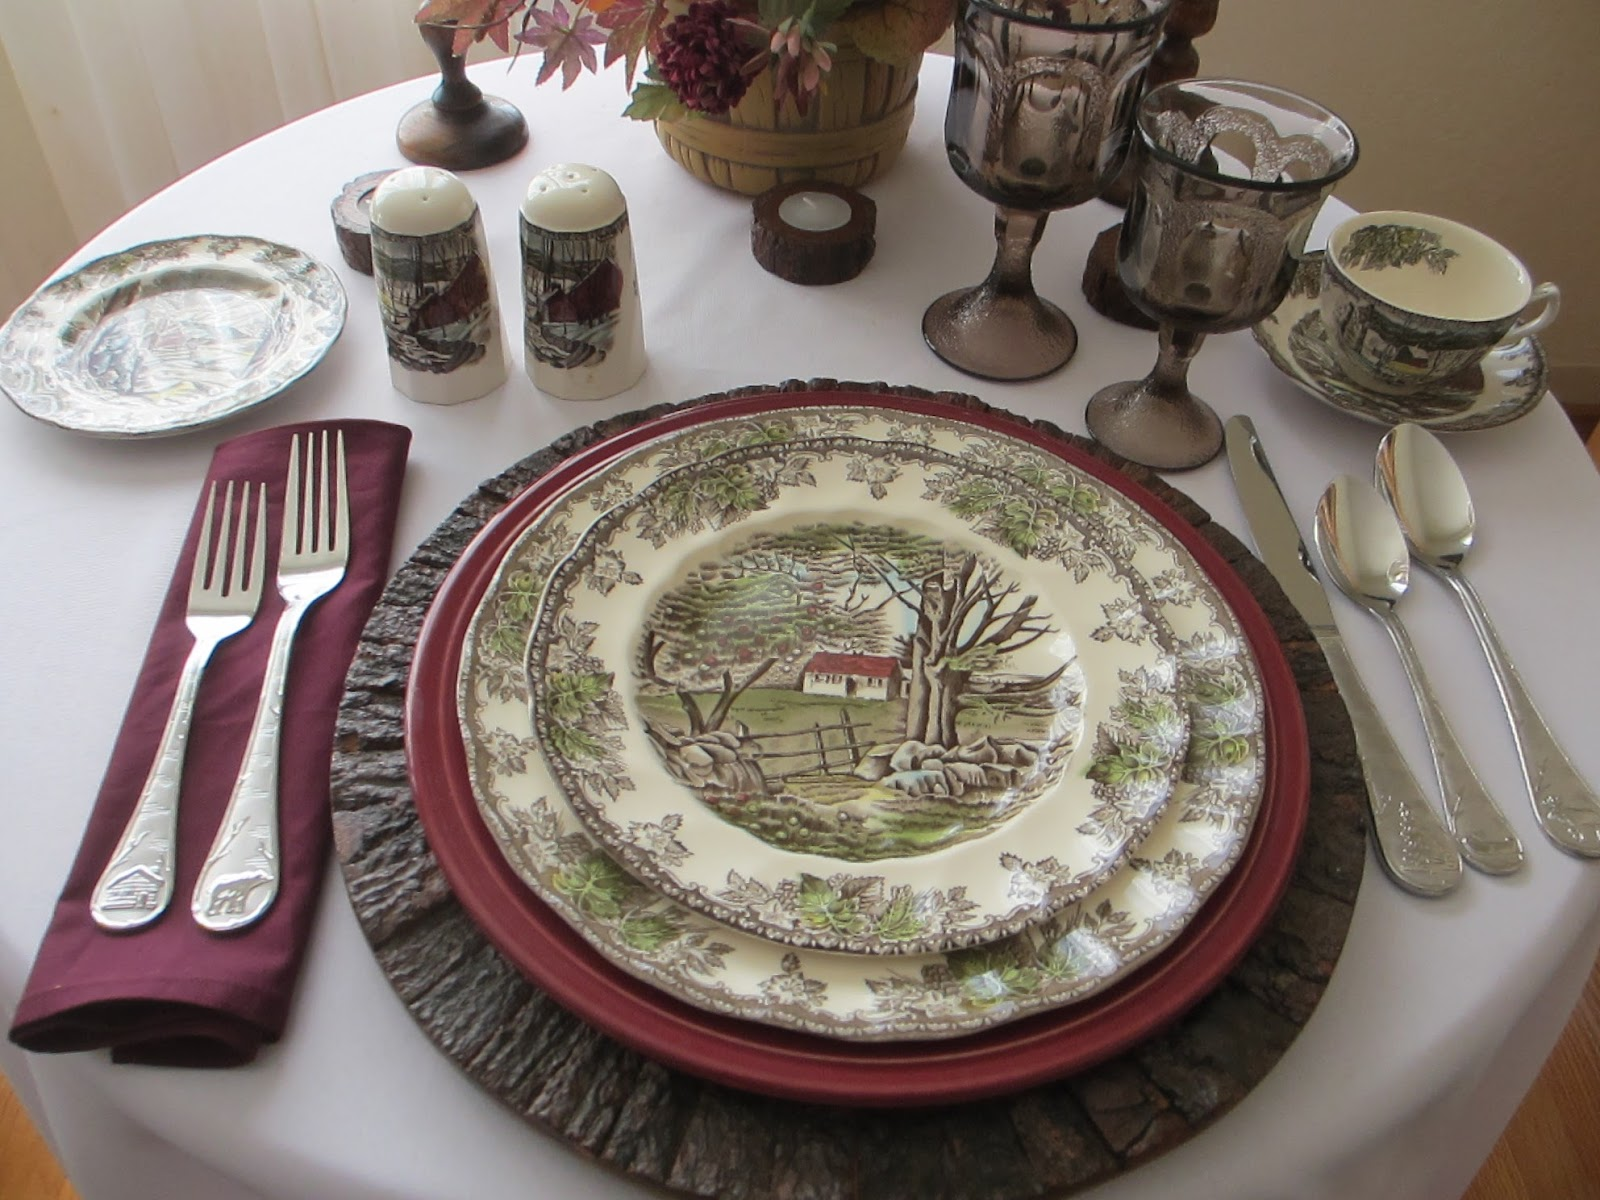 It seemed natural to use Johnson Brotheru0027s  Friendly Village  dinnerware to go with it. & Table for One: Friendly Village Fall Table